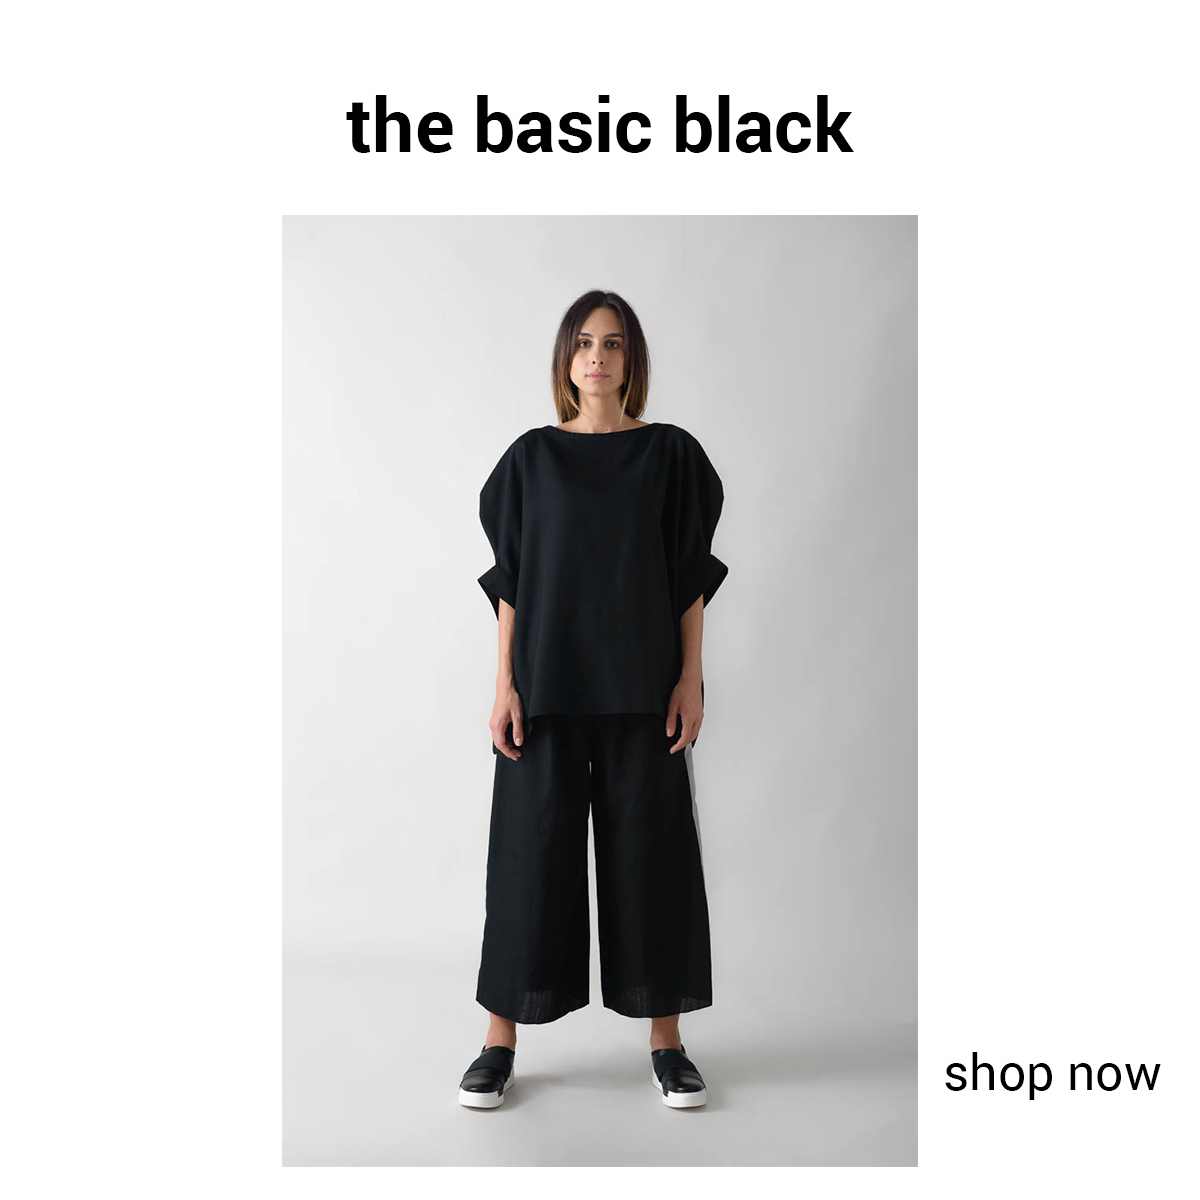 the basic black